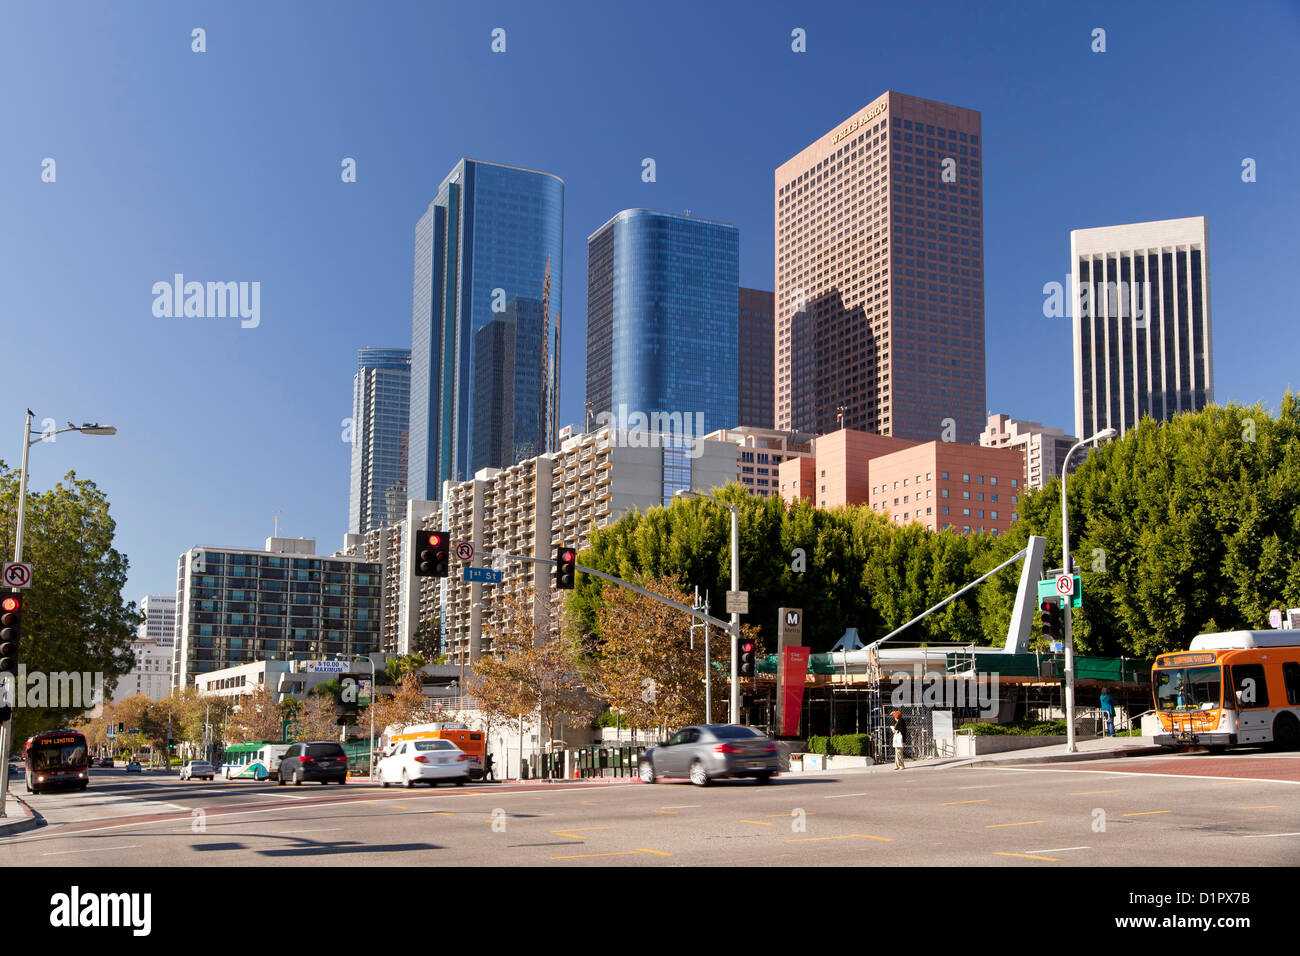 Skyline Downtown Los Angeles, California, United States of America, USA - Stock Image